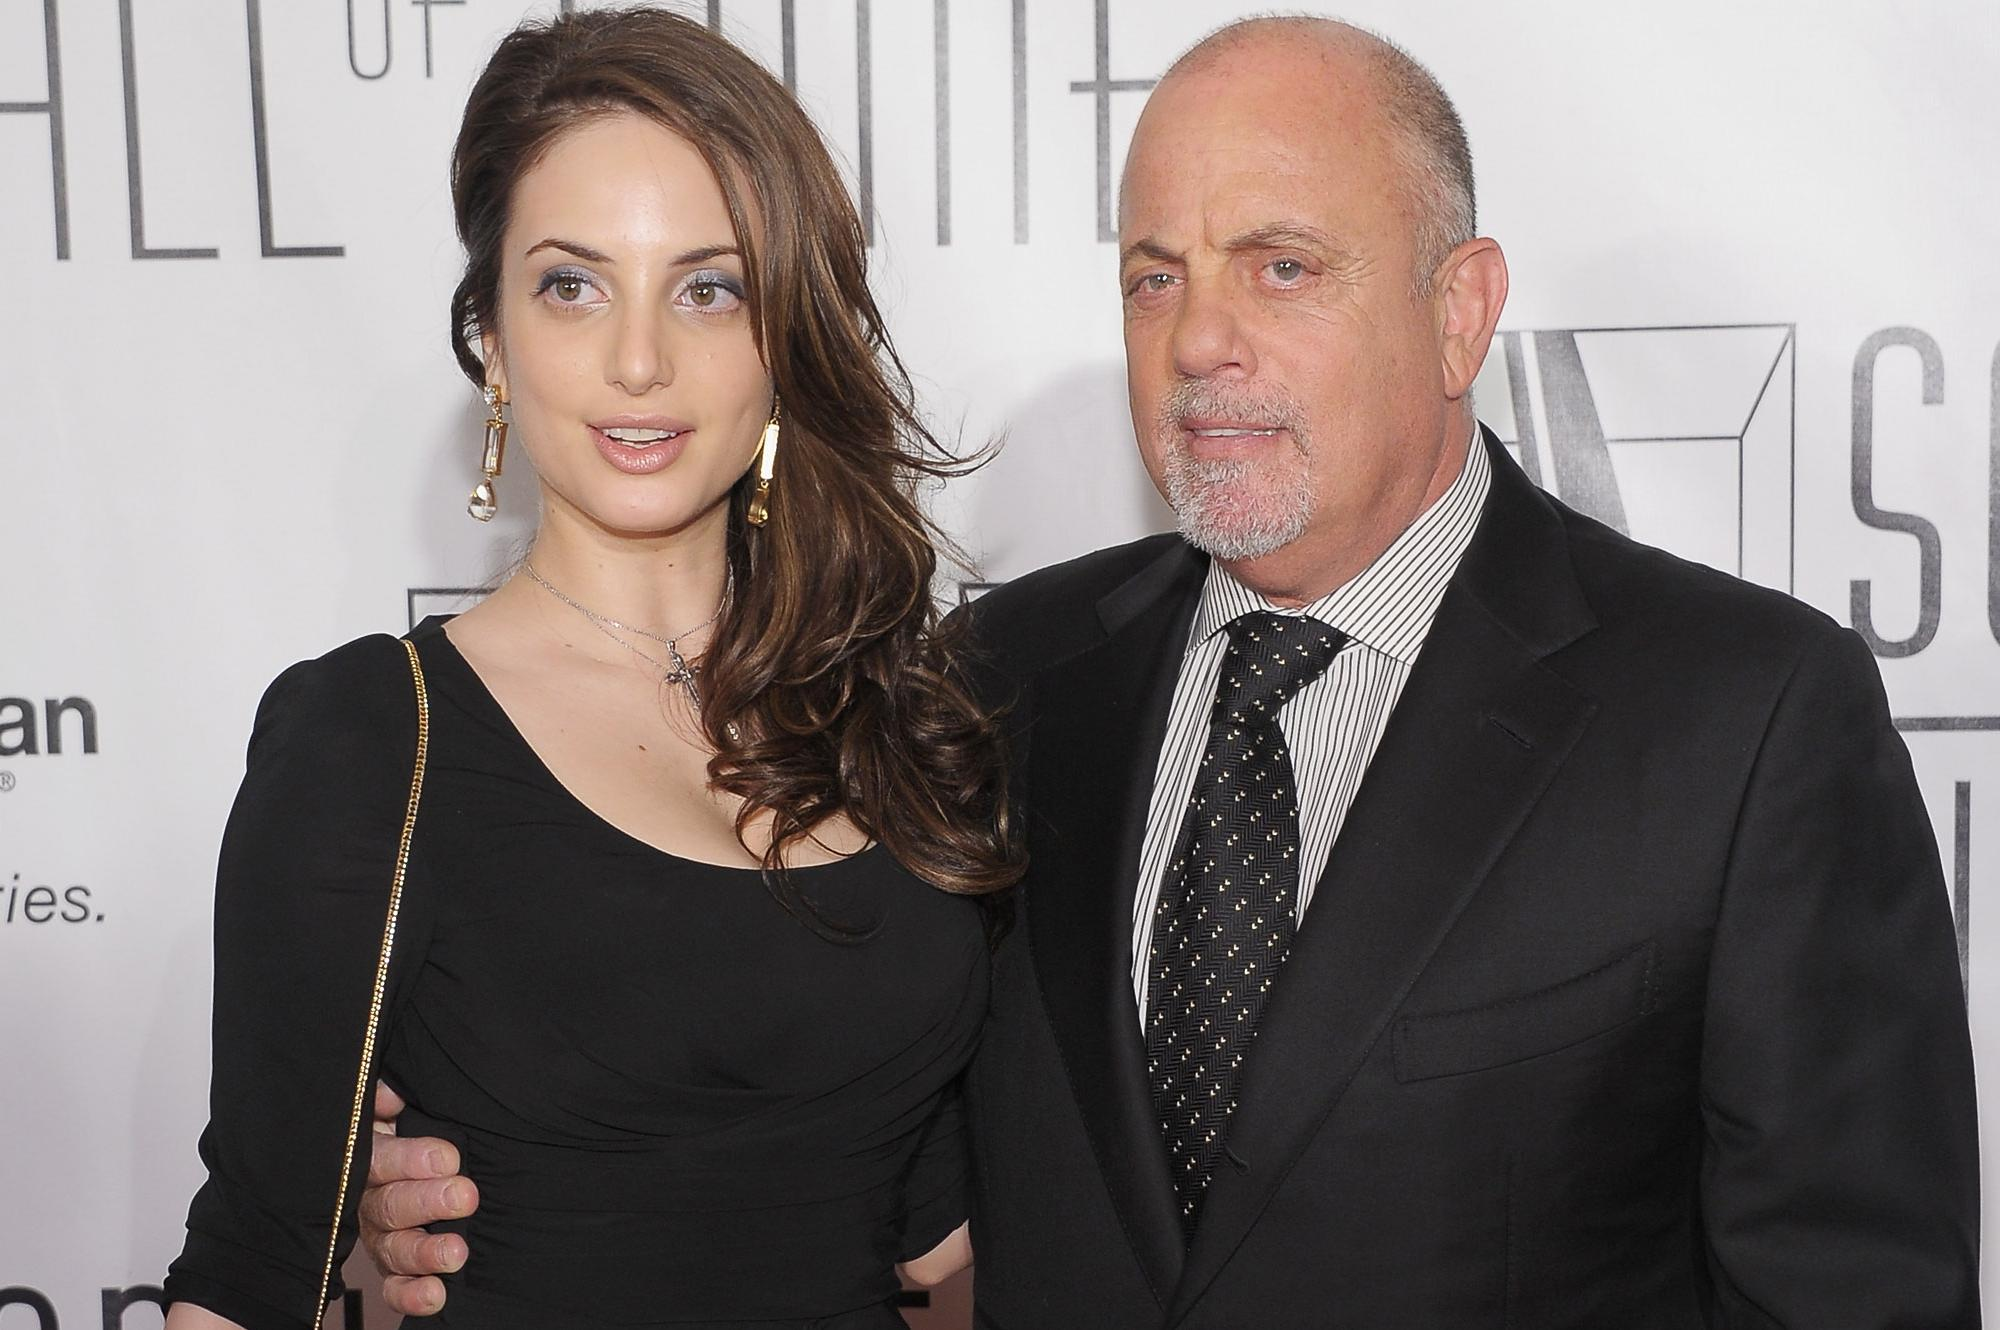 billy-joel-daughter-1533756683790-1533756686252.jpg